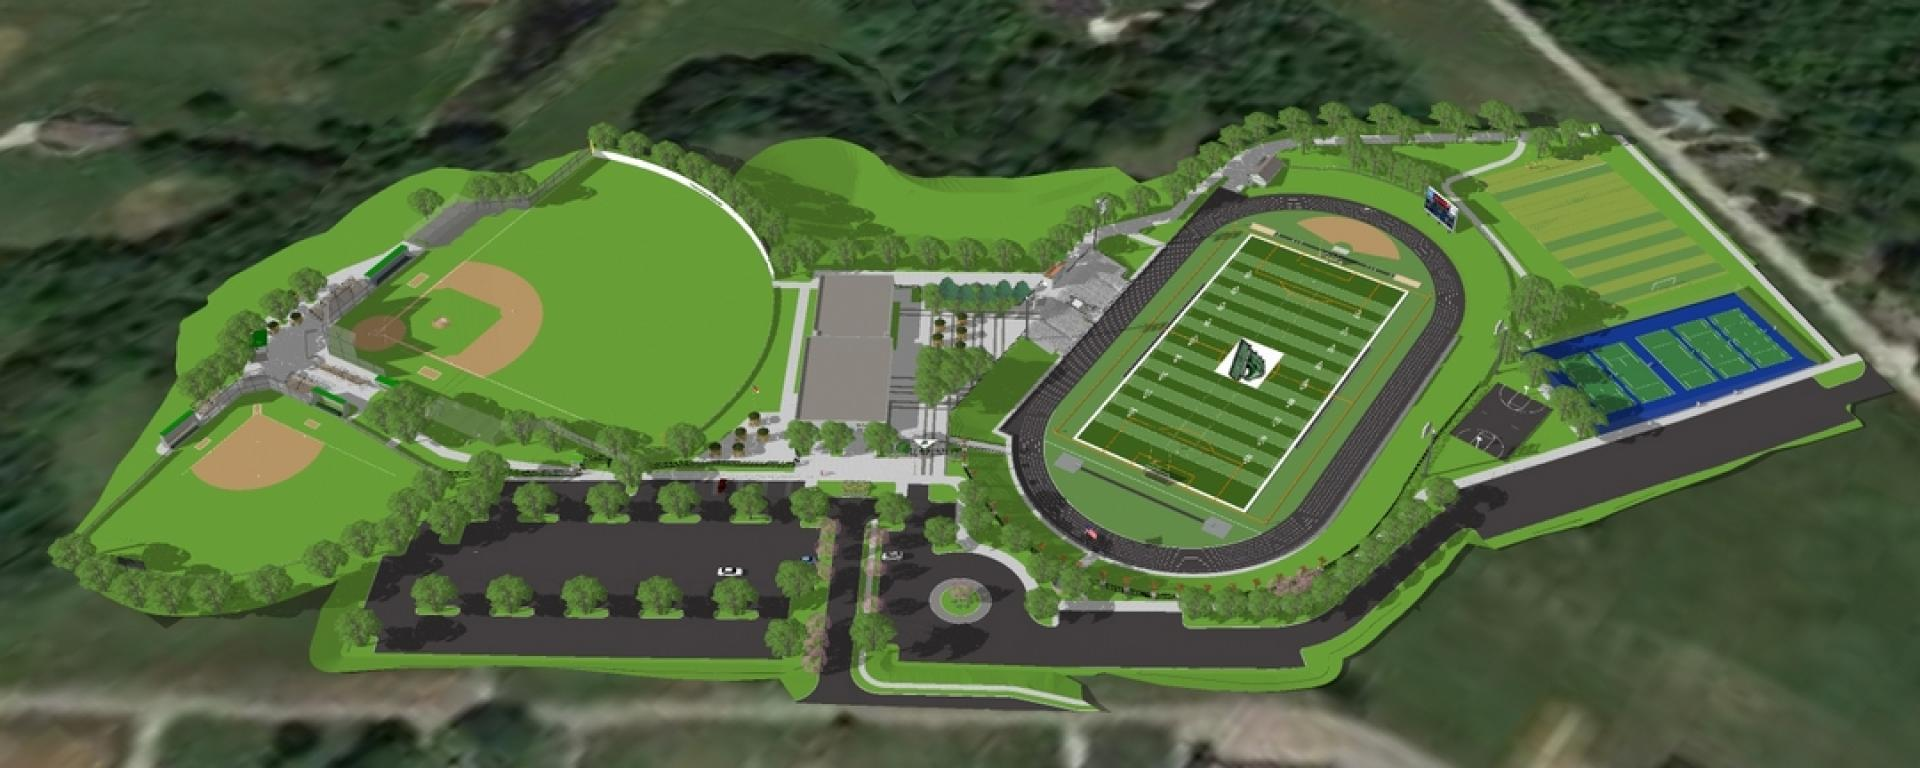 3D model of BBHS Athletic Complex Plan